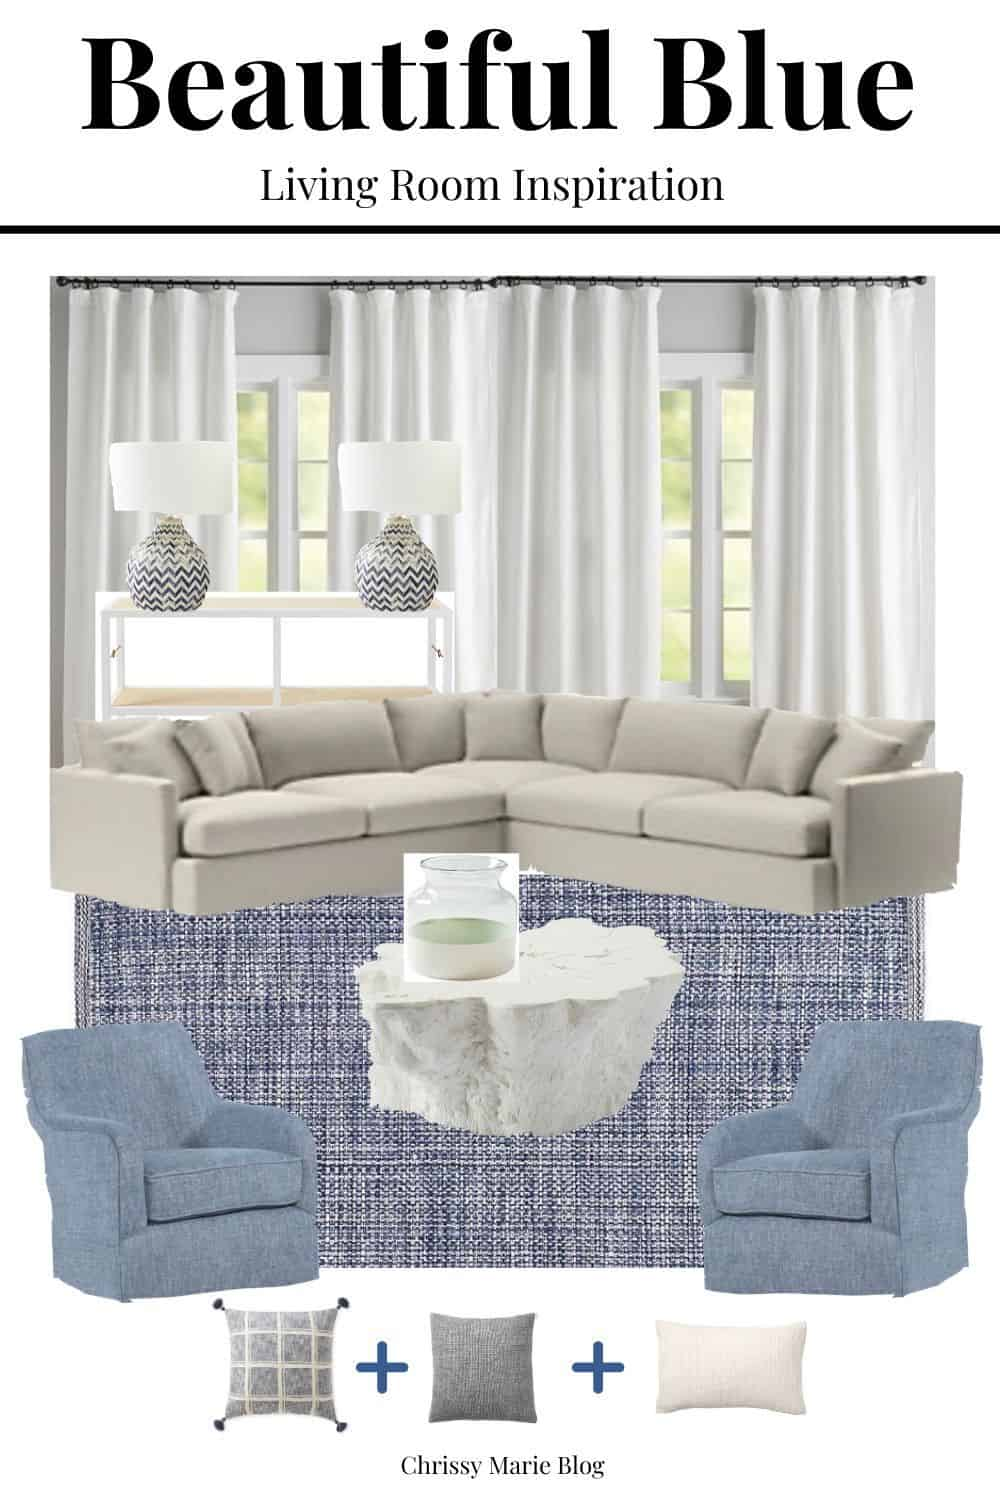 blue living room inspiration with photos of a living room